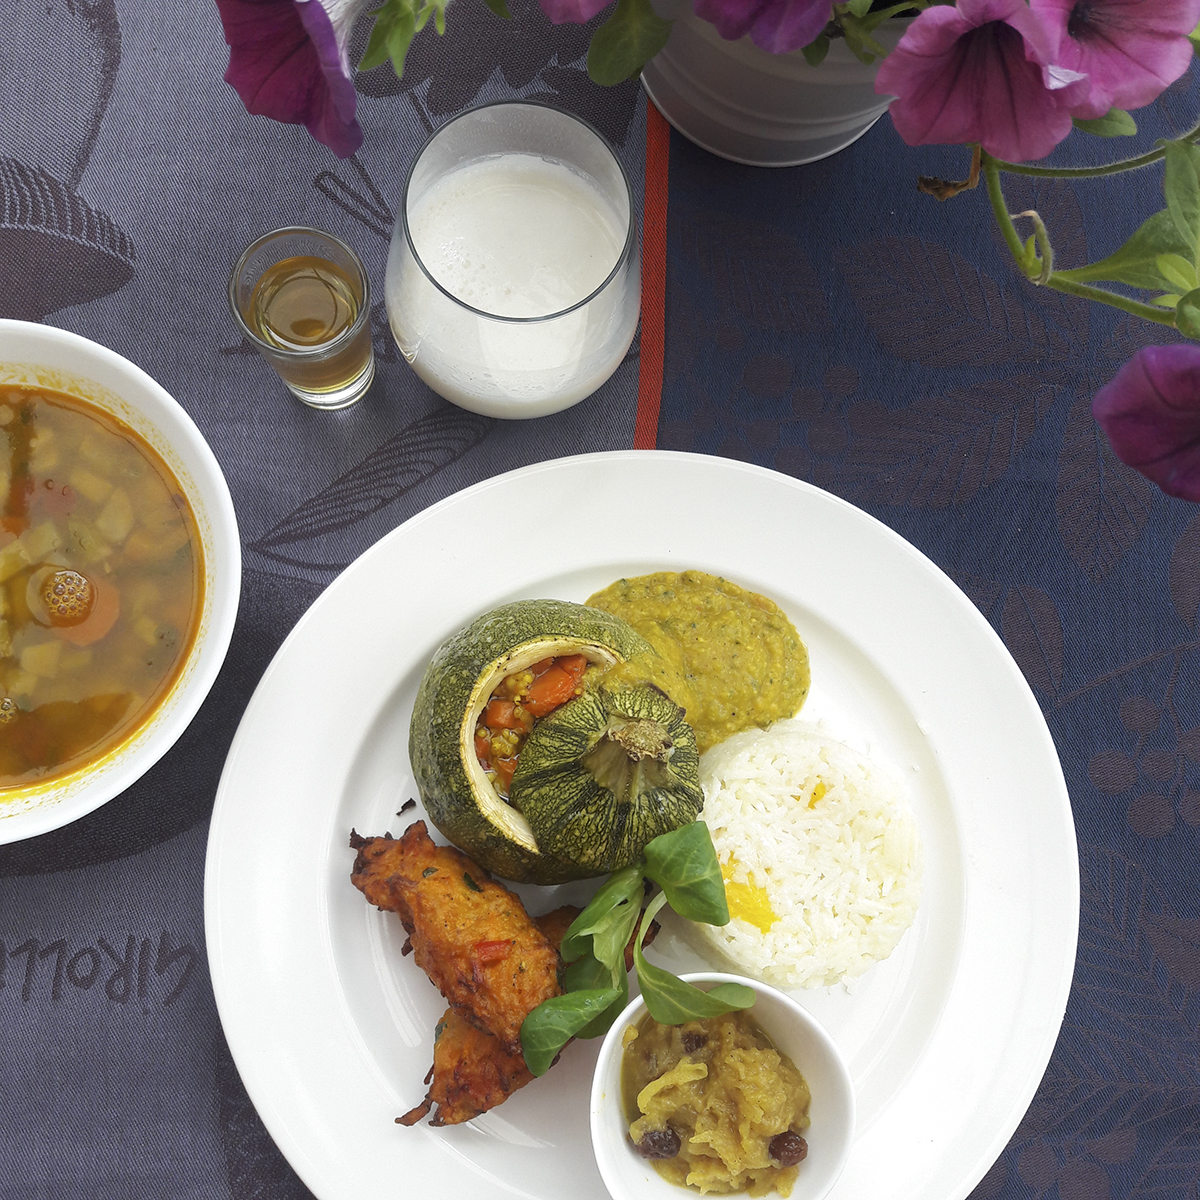 Vegetable fritters, apple chutney, stuffed pumpkin, vegetable stew and lassi